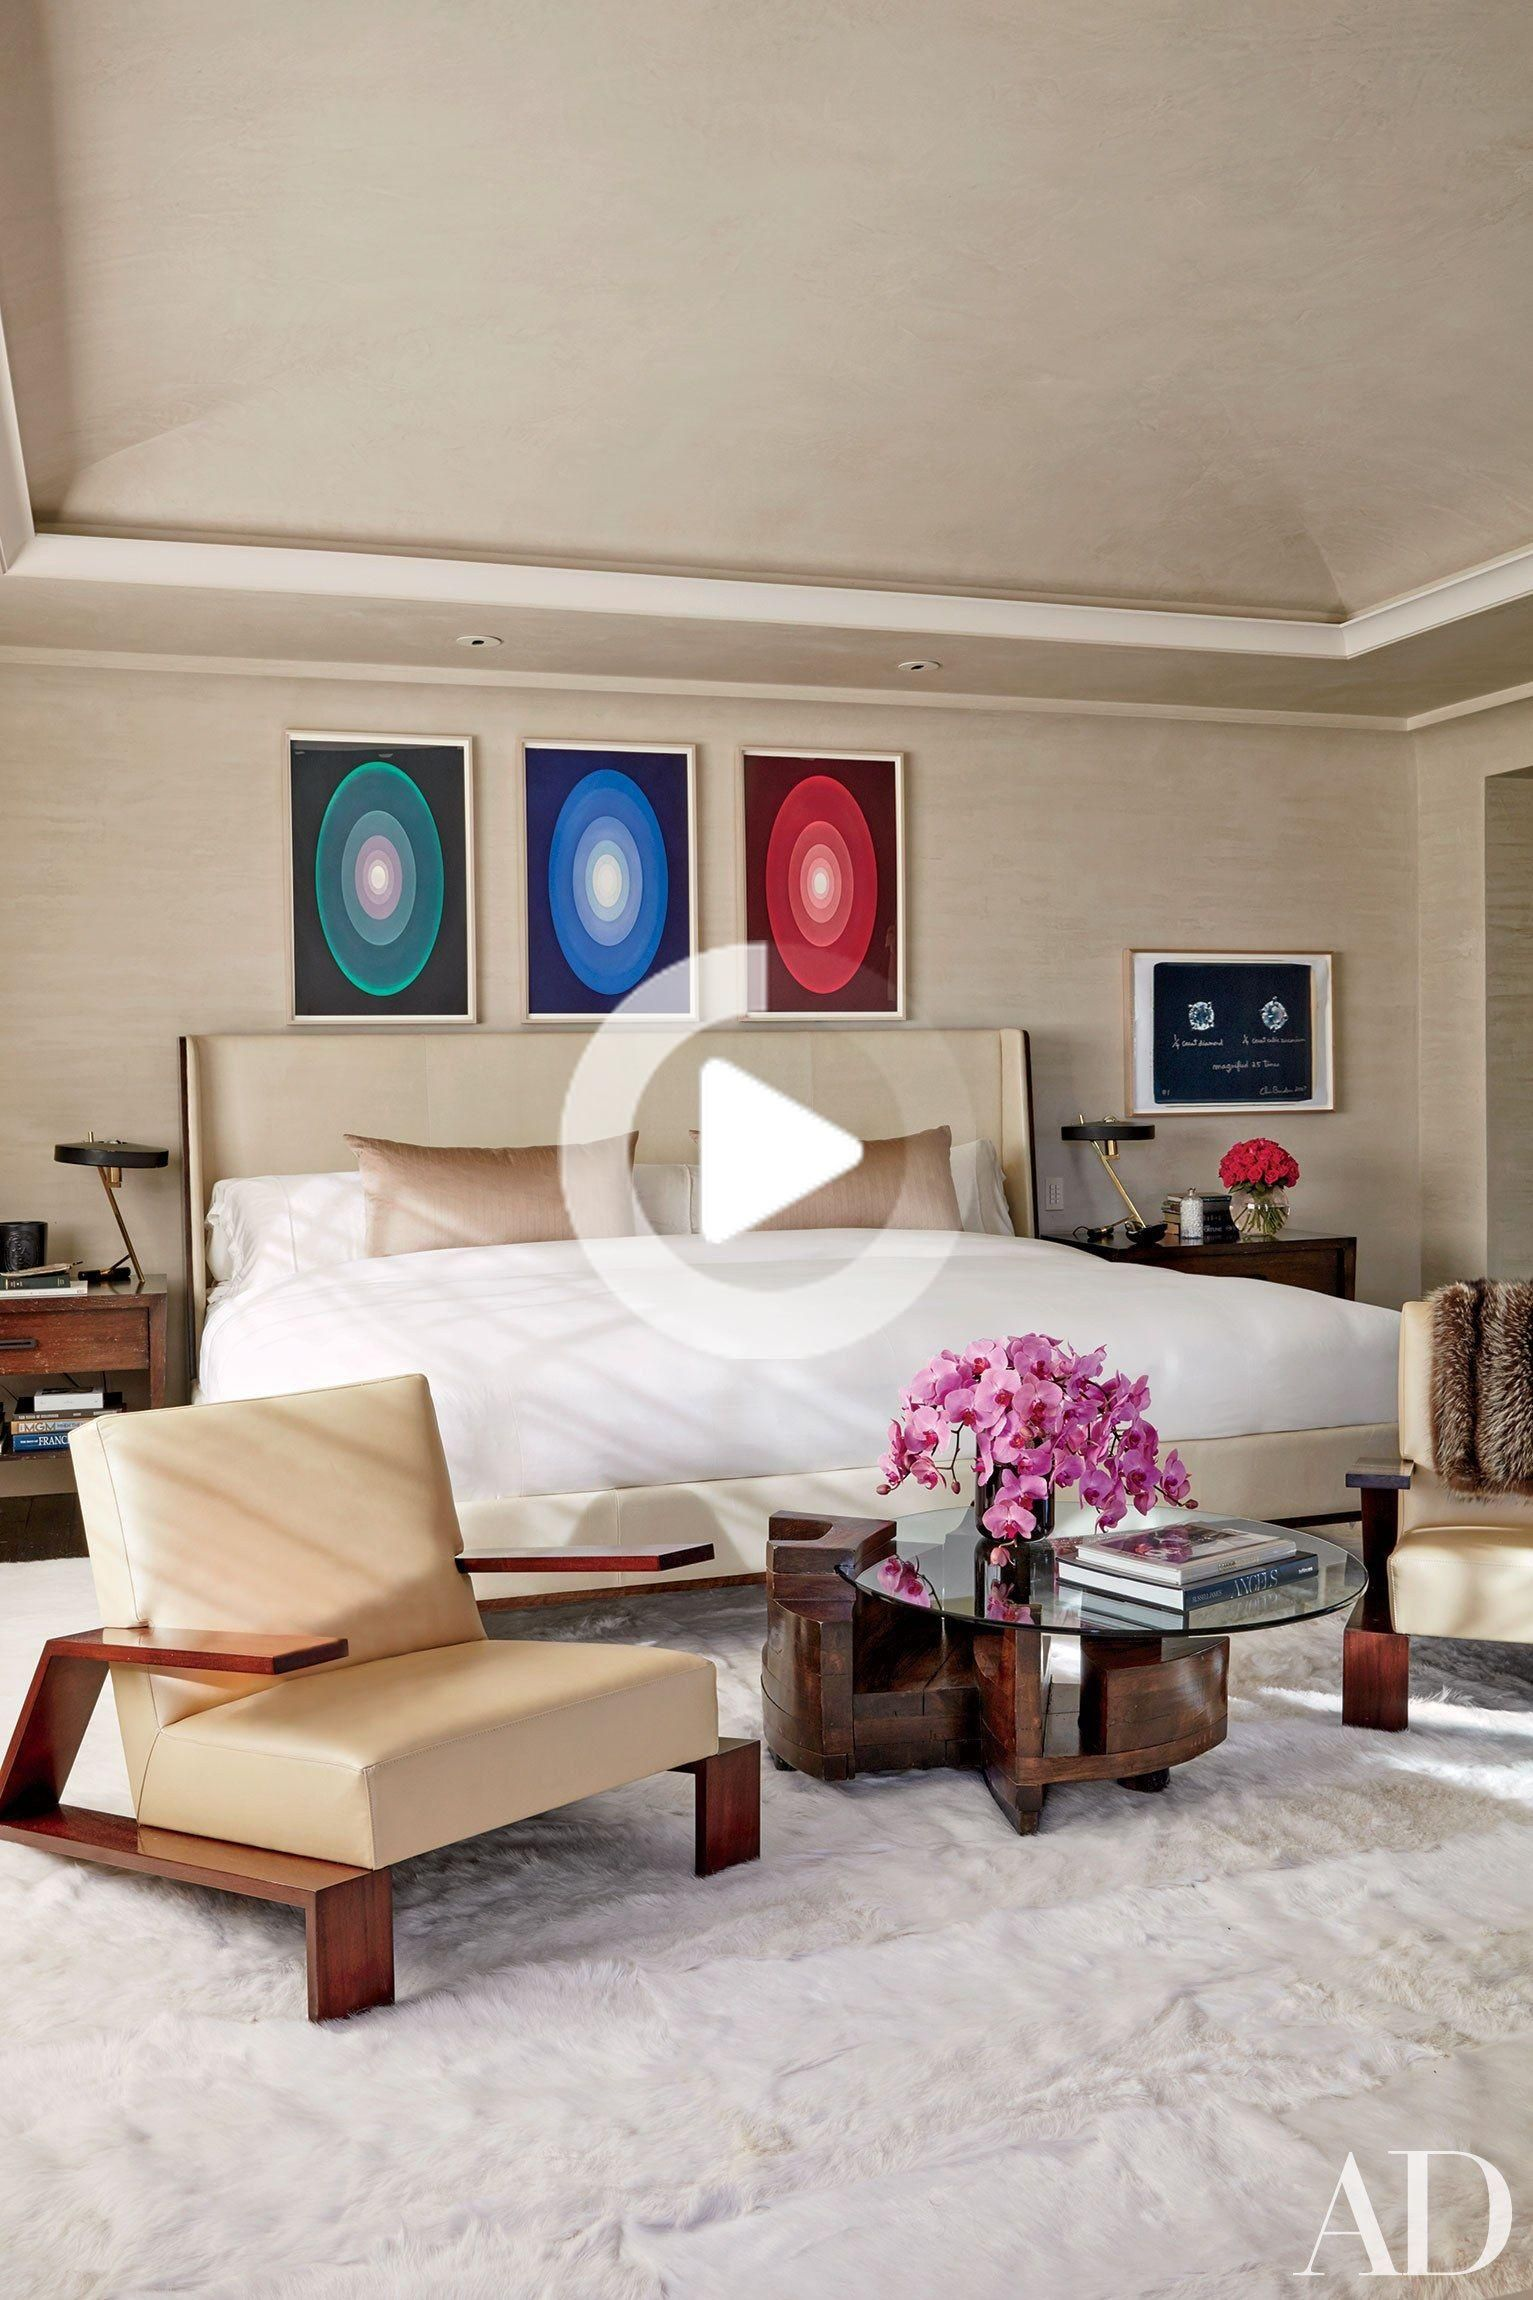 These luxurious quarters are seriously slumber-inducing #celebrity #celebrities